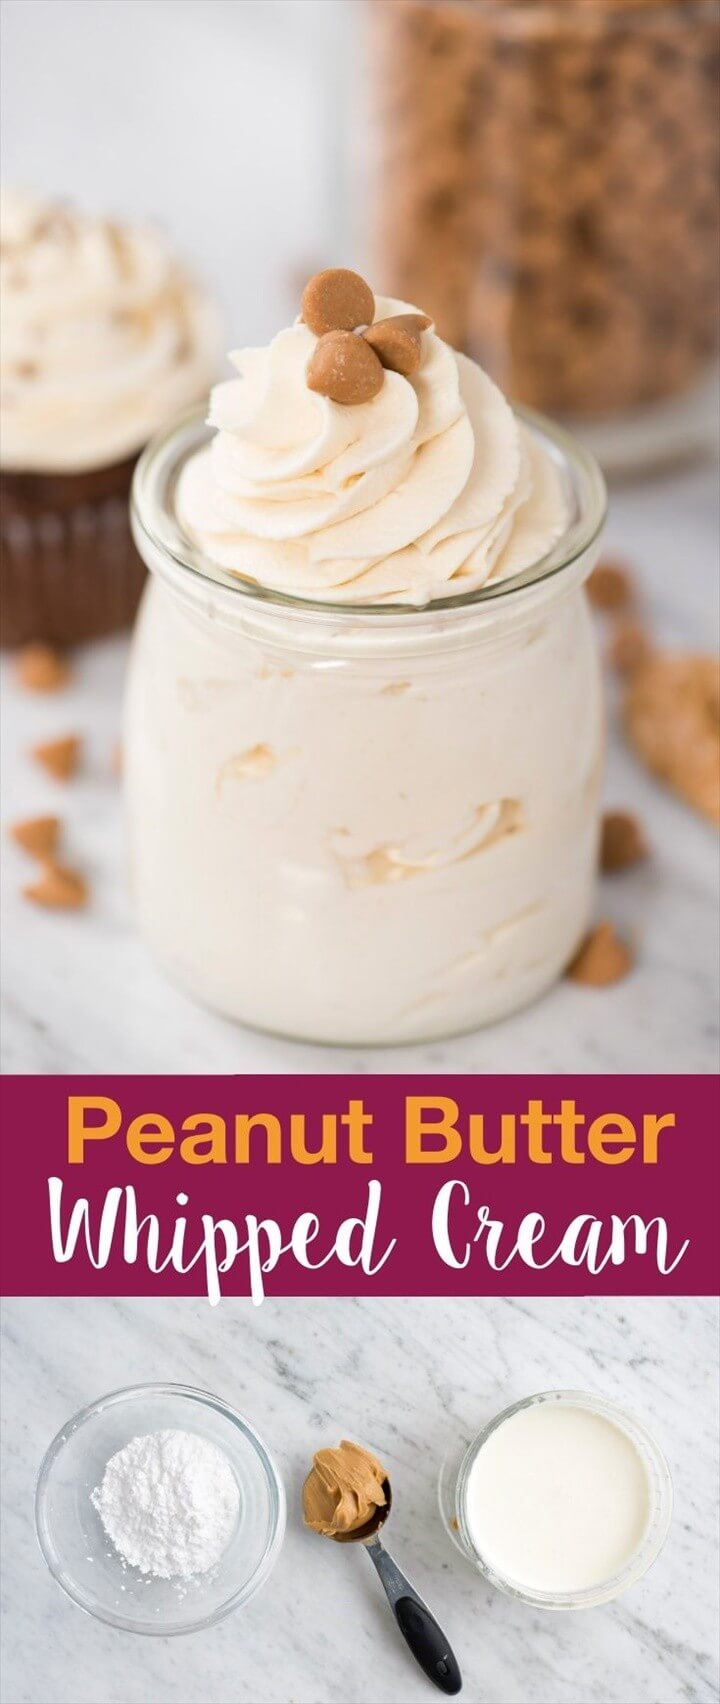 Easy To Make Peanut Butter Whipped Cream Frosting